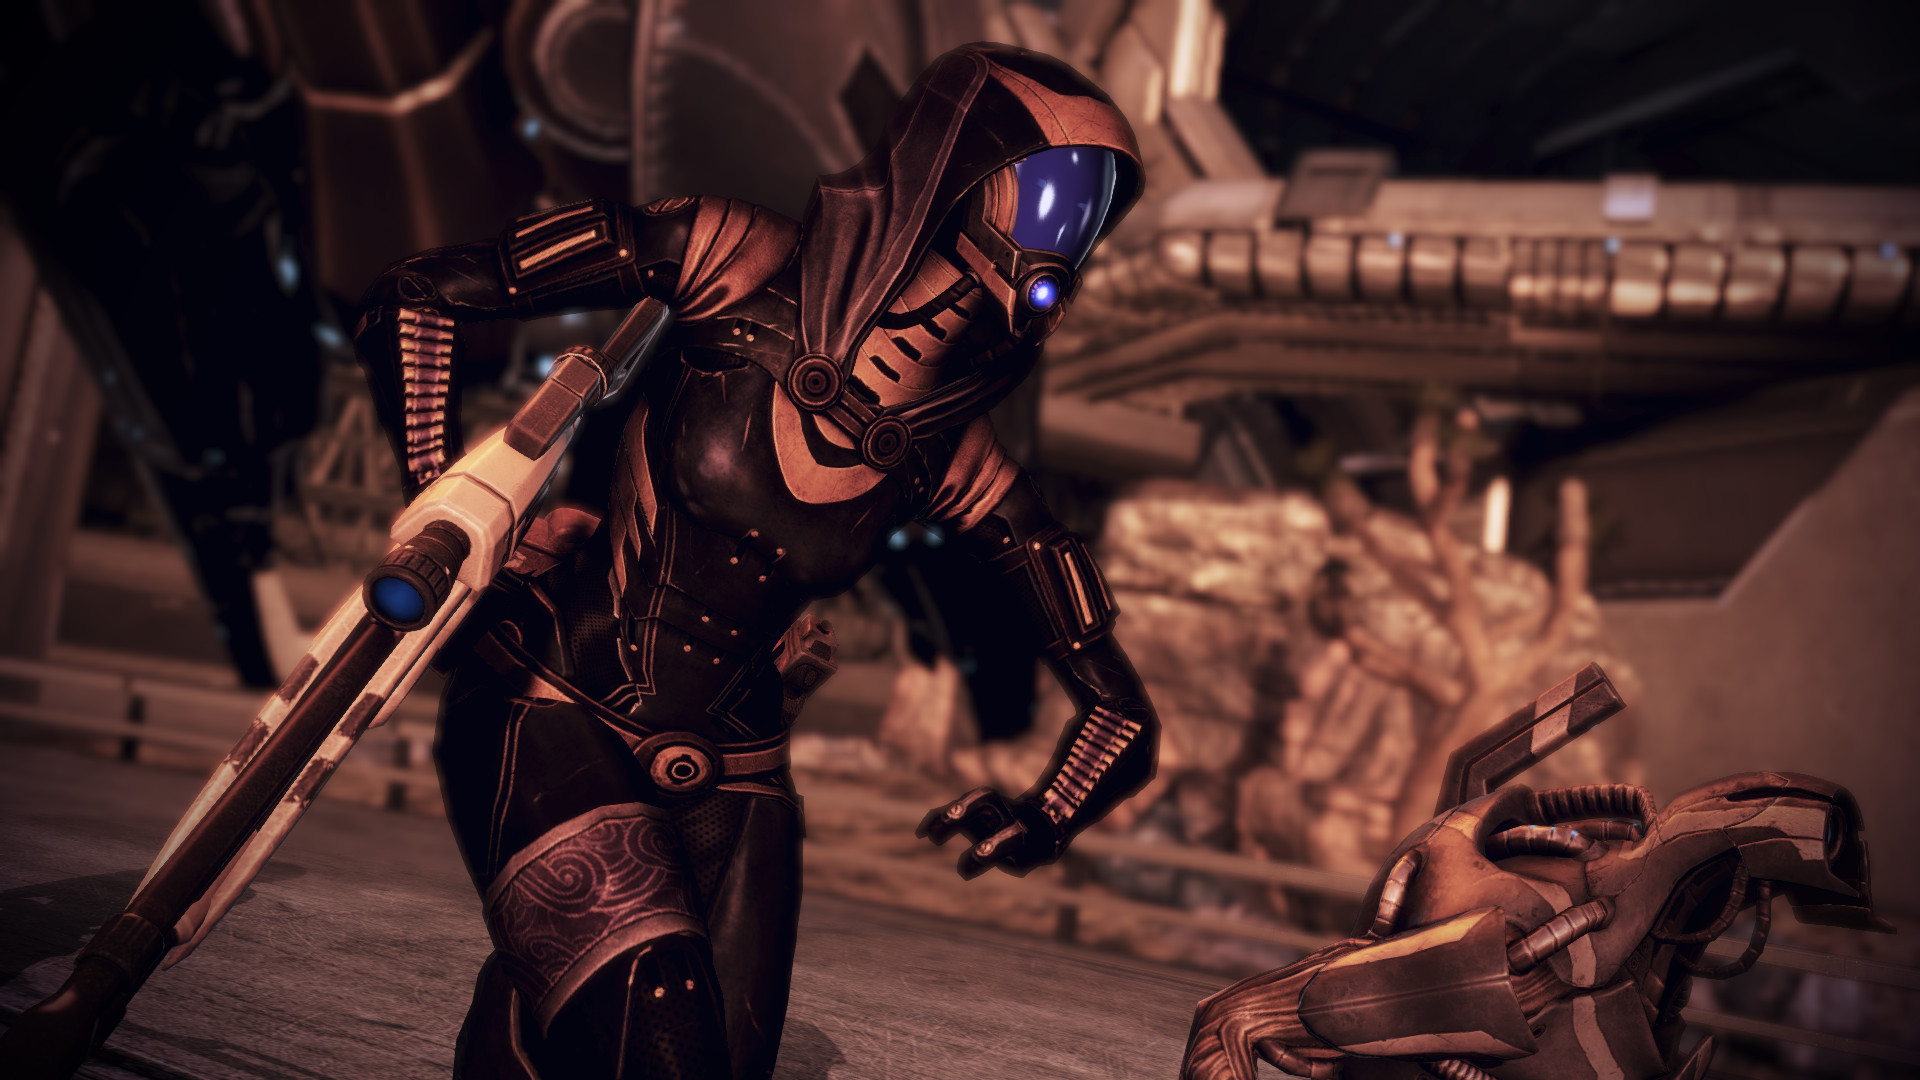 Tali'Zorah vas Normandy 08 by johntesh